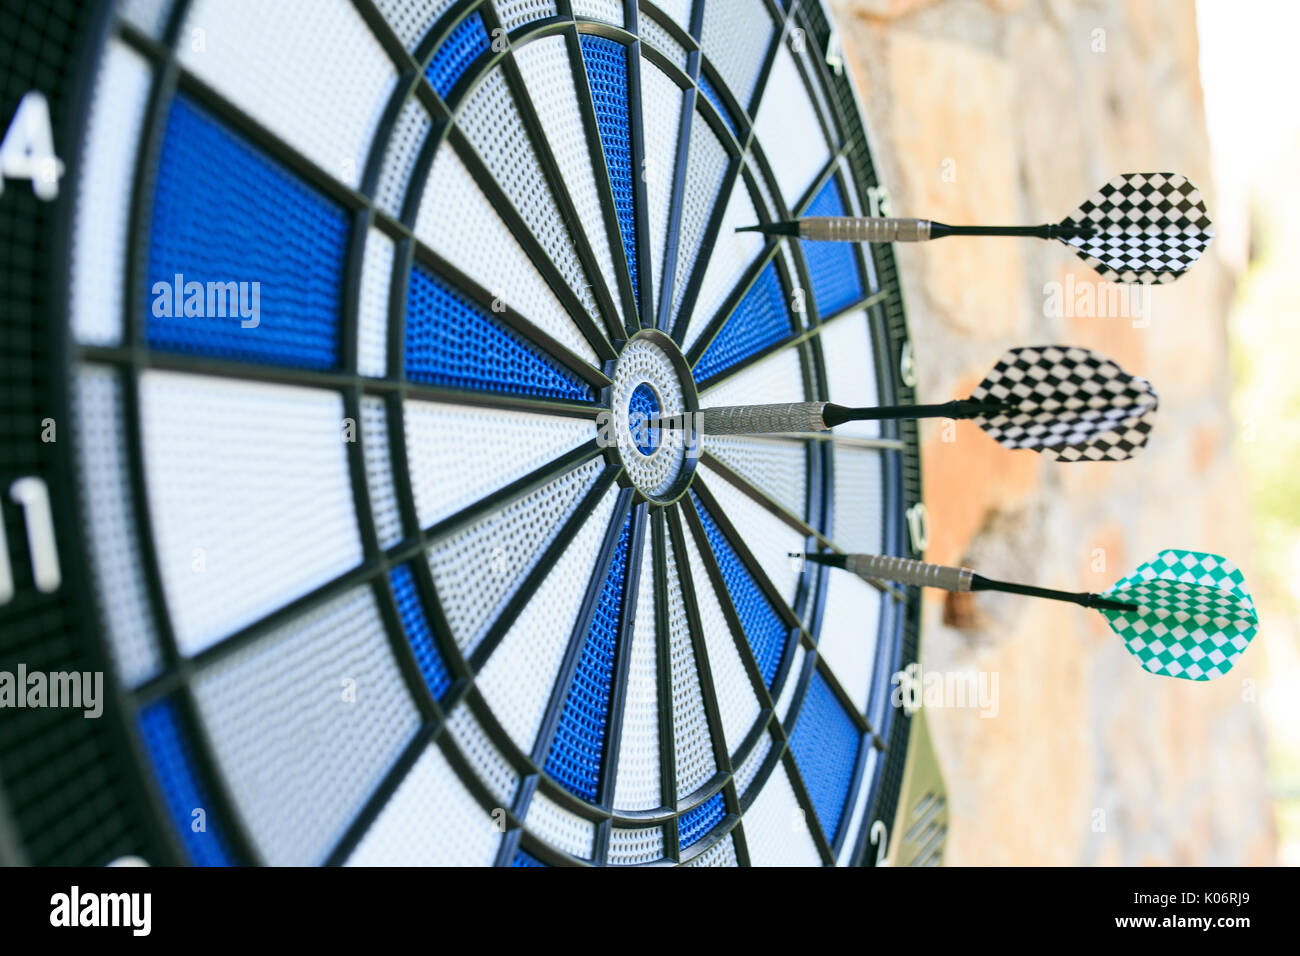 Bullseye on a wall with some darts - Stock Image